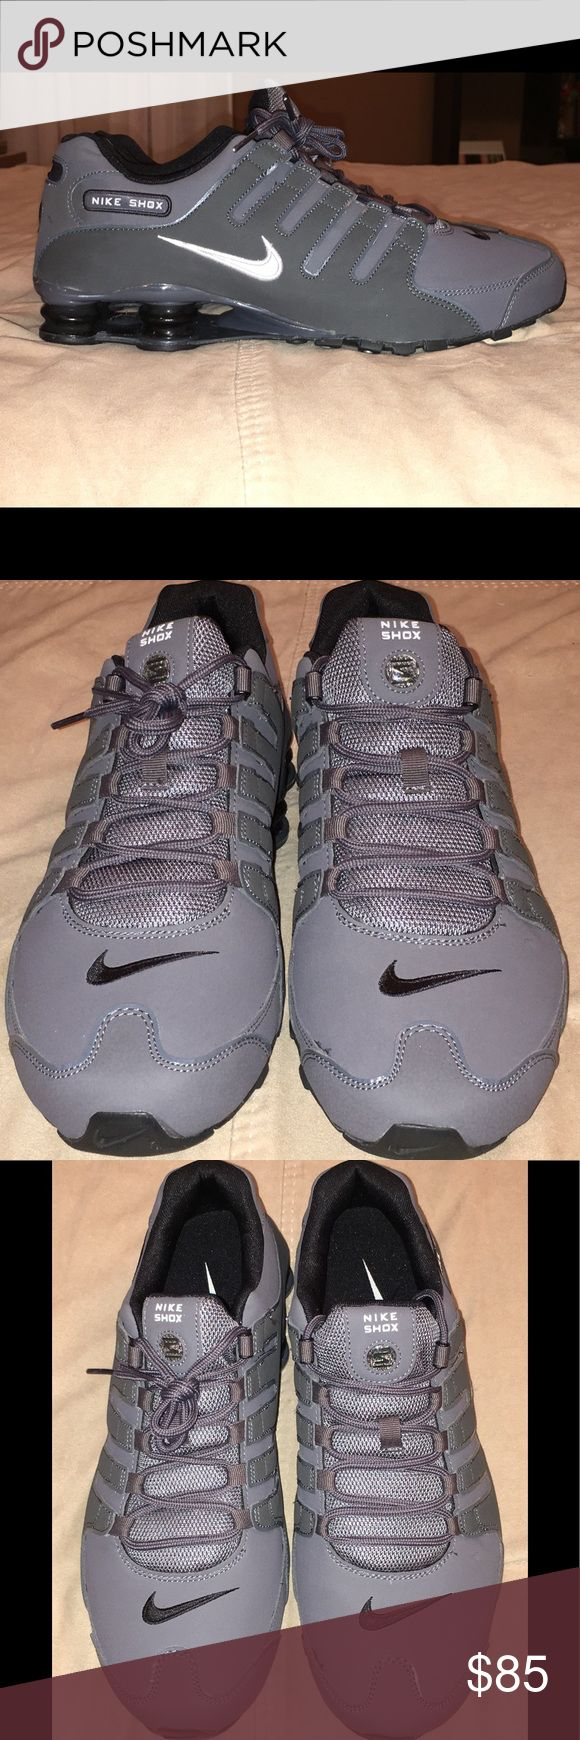 Nike shox nz Sz 12 378341-059 Brand new from smoke free home. Feel free to contact me with any questions Nike Shoes Sneakers